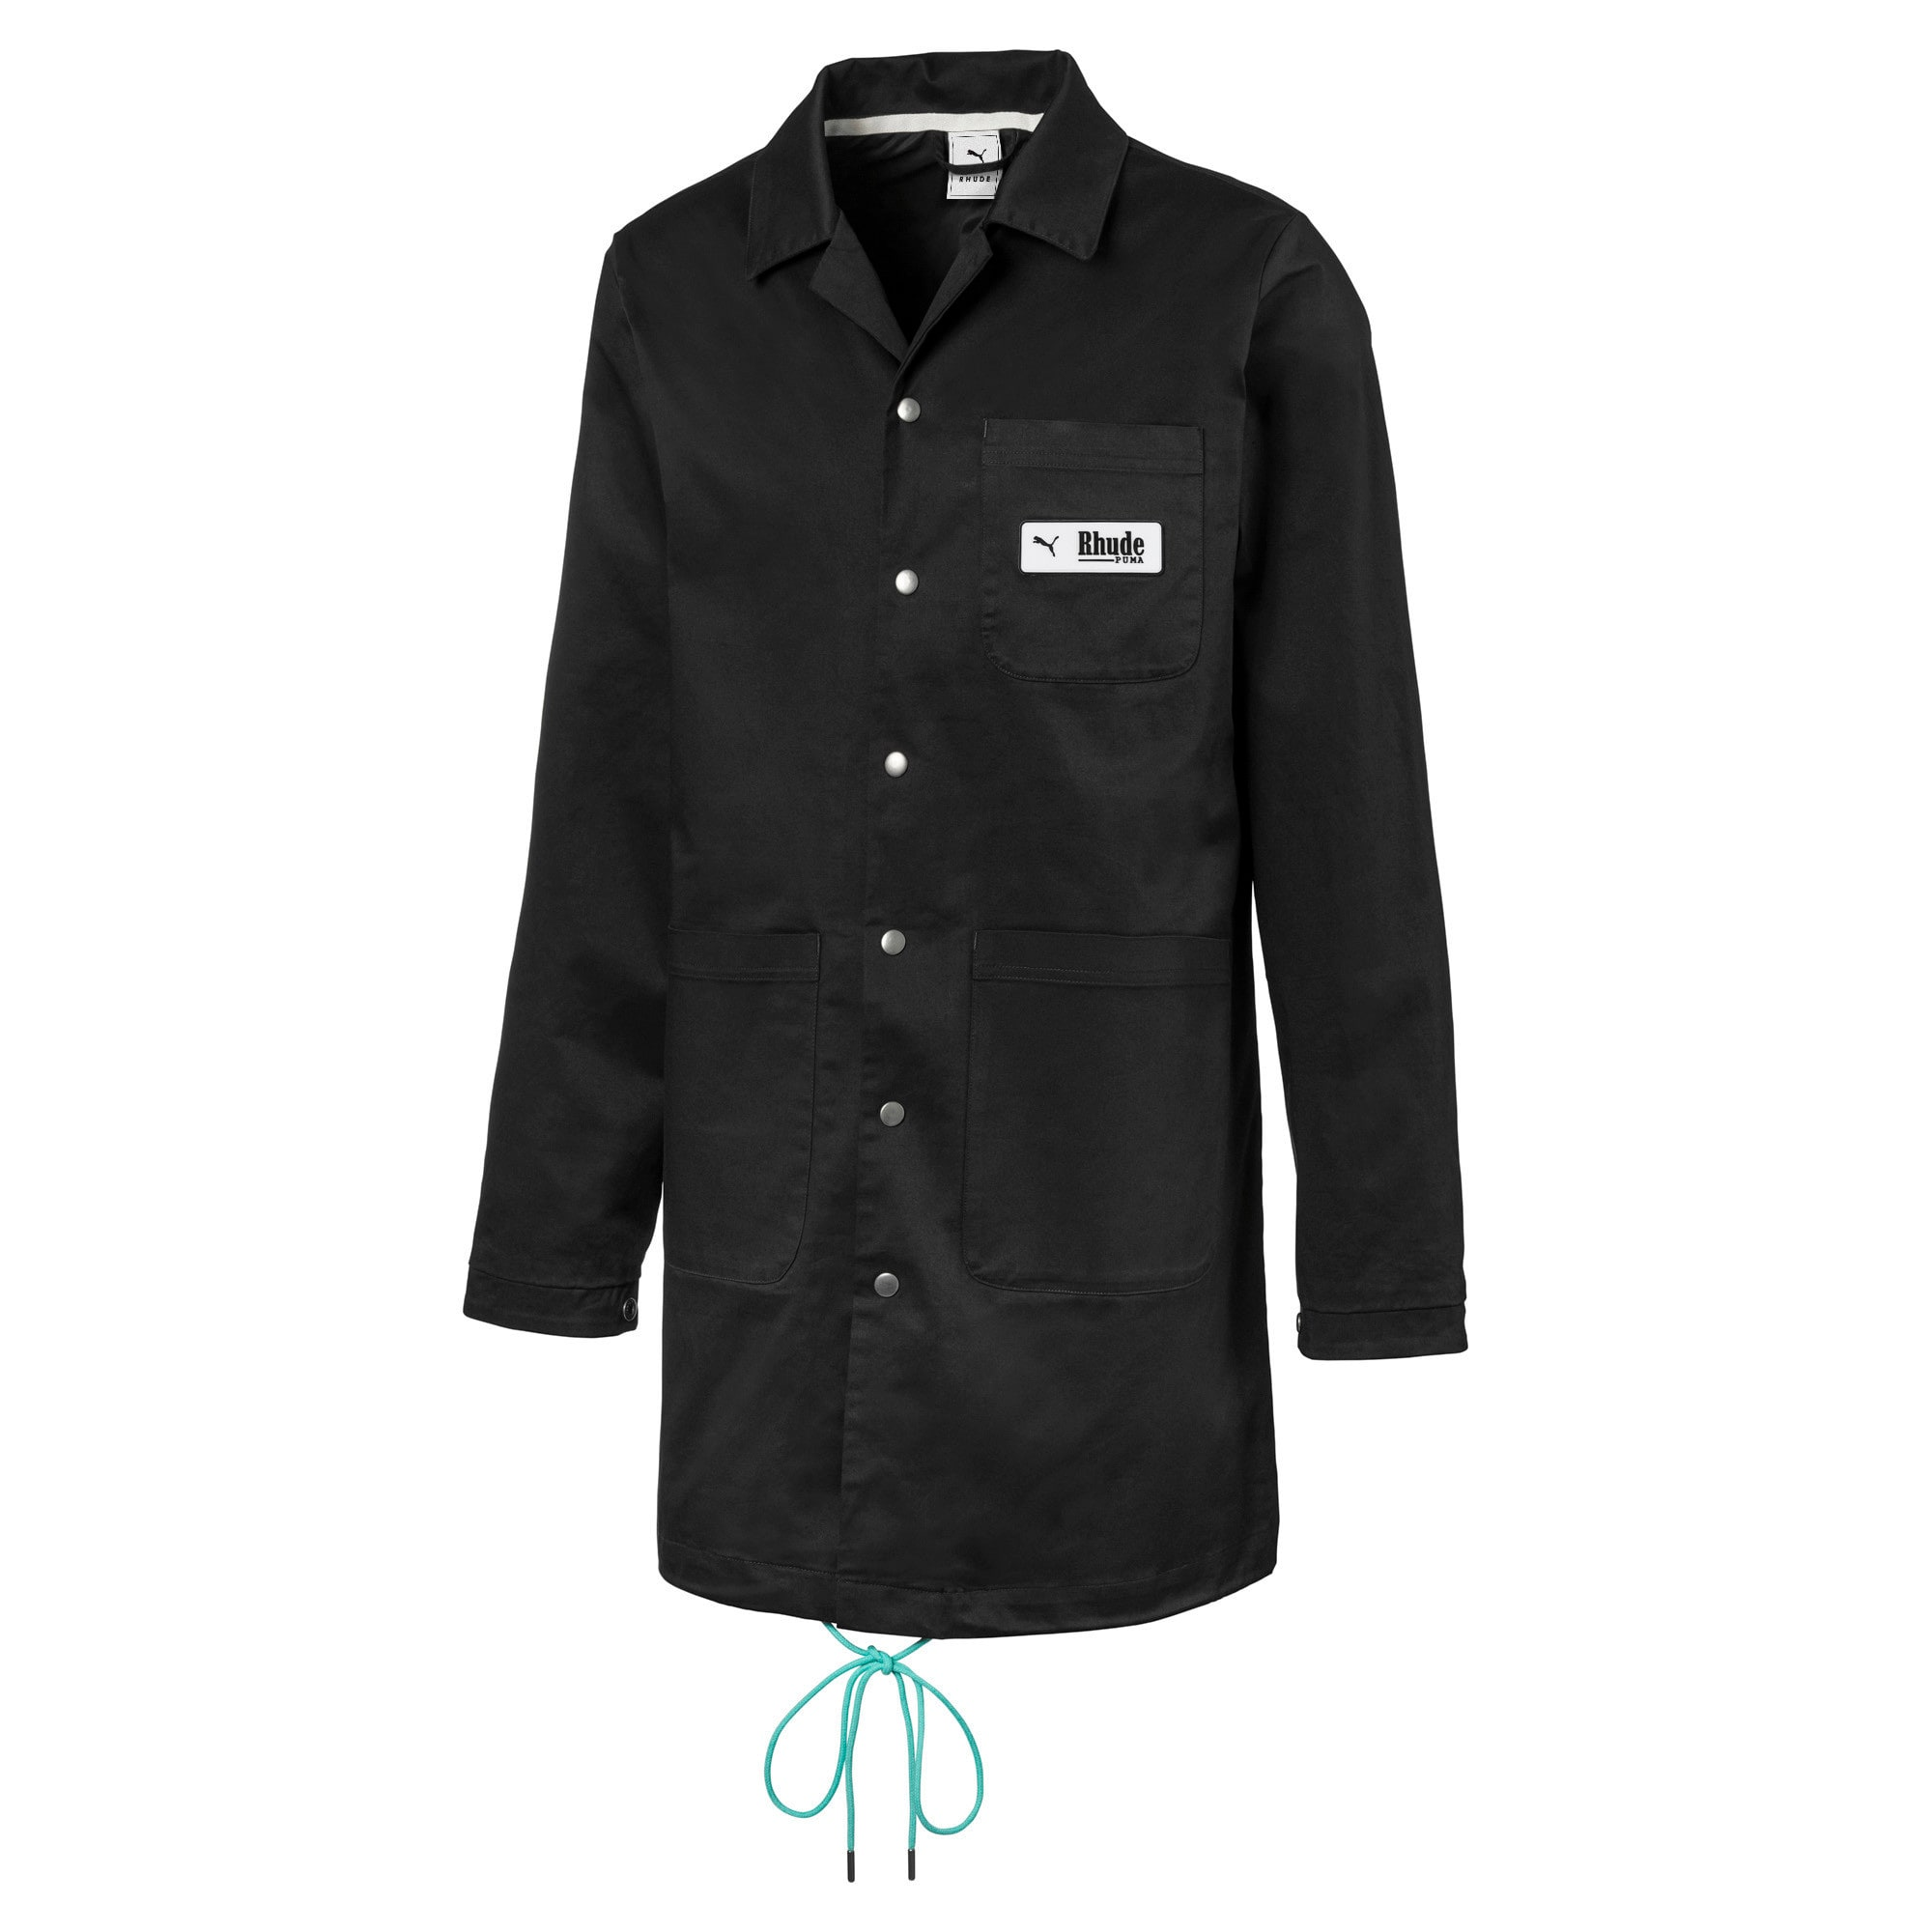 Thumbnail 2 of PUMA x RHUDE Men's Coat, Puma Black, medium